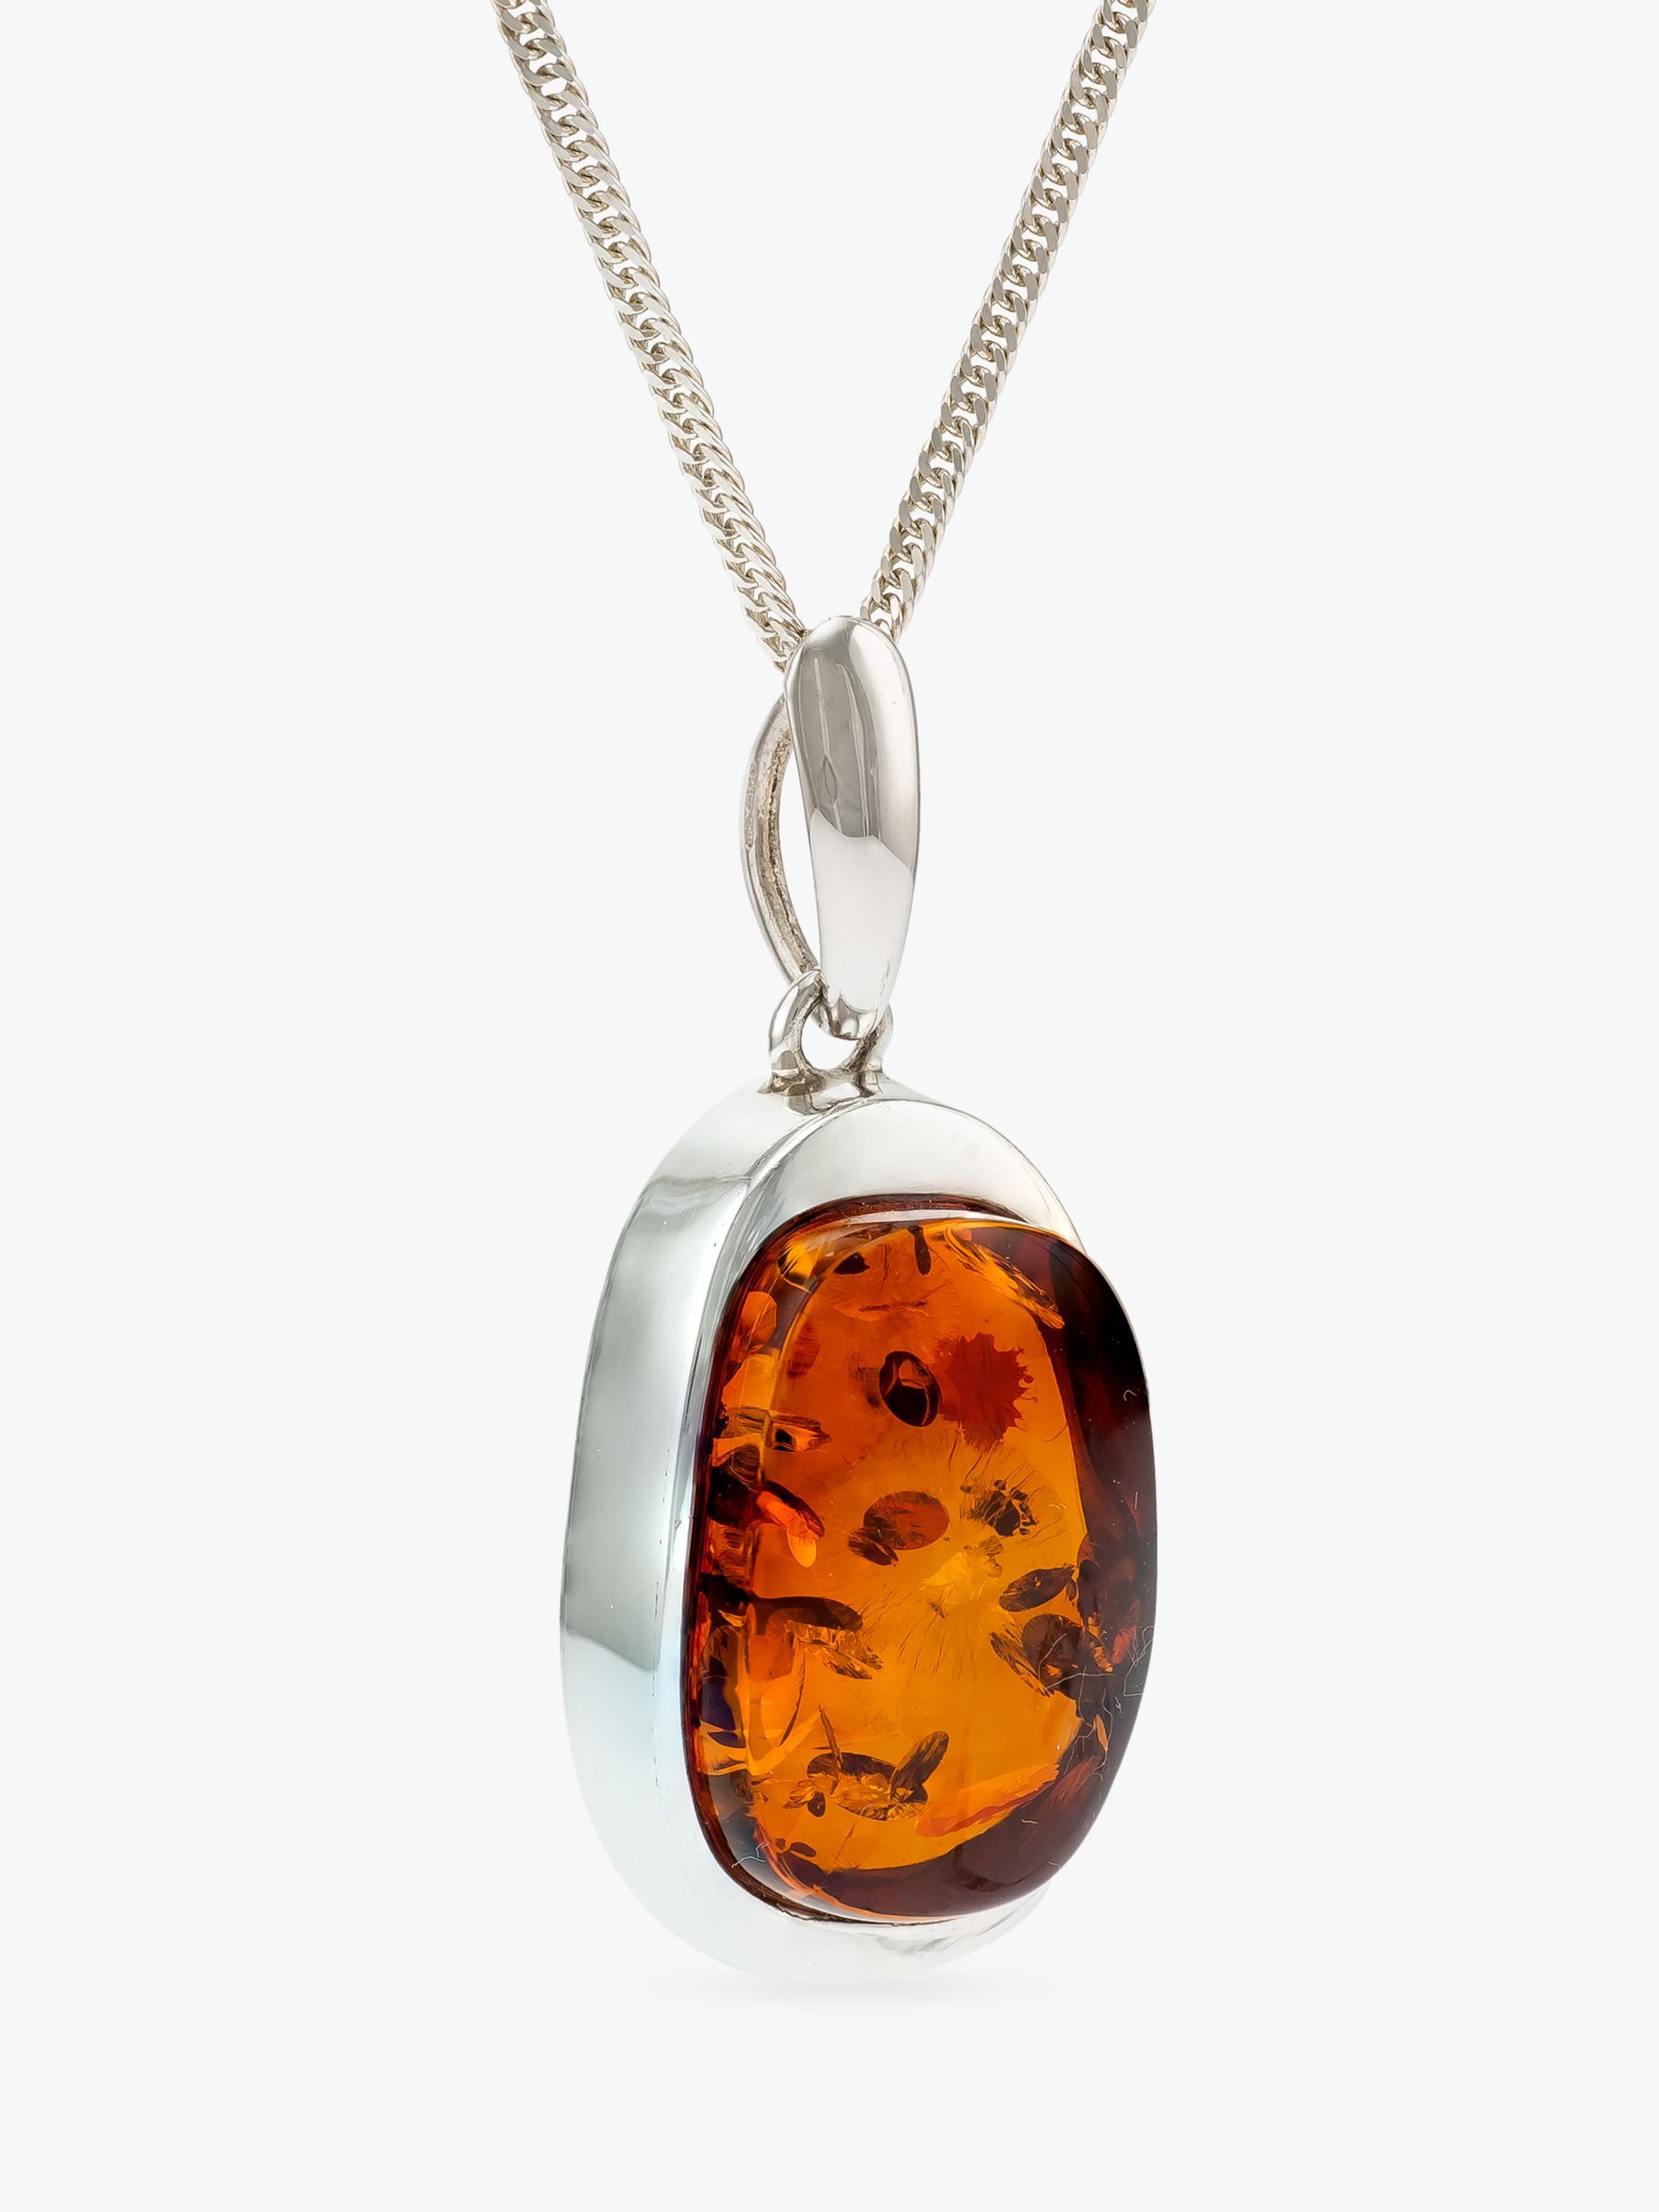 Honey Amber Gold Plated Sterling Silver High Quality Drop Pendant Rolo Chain 18